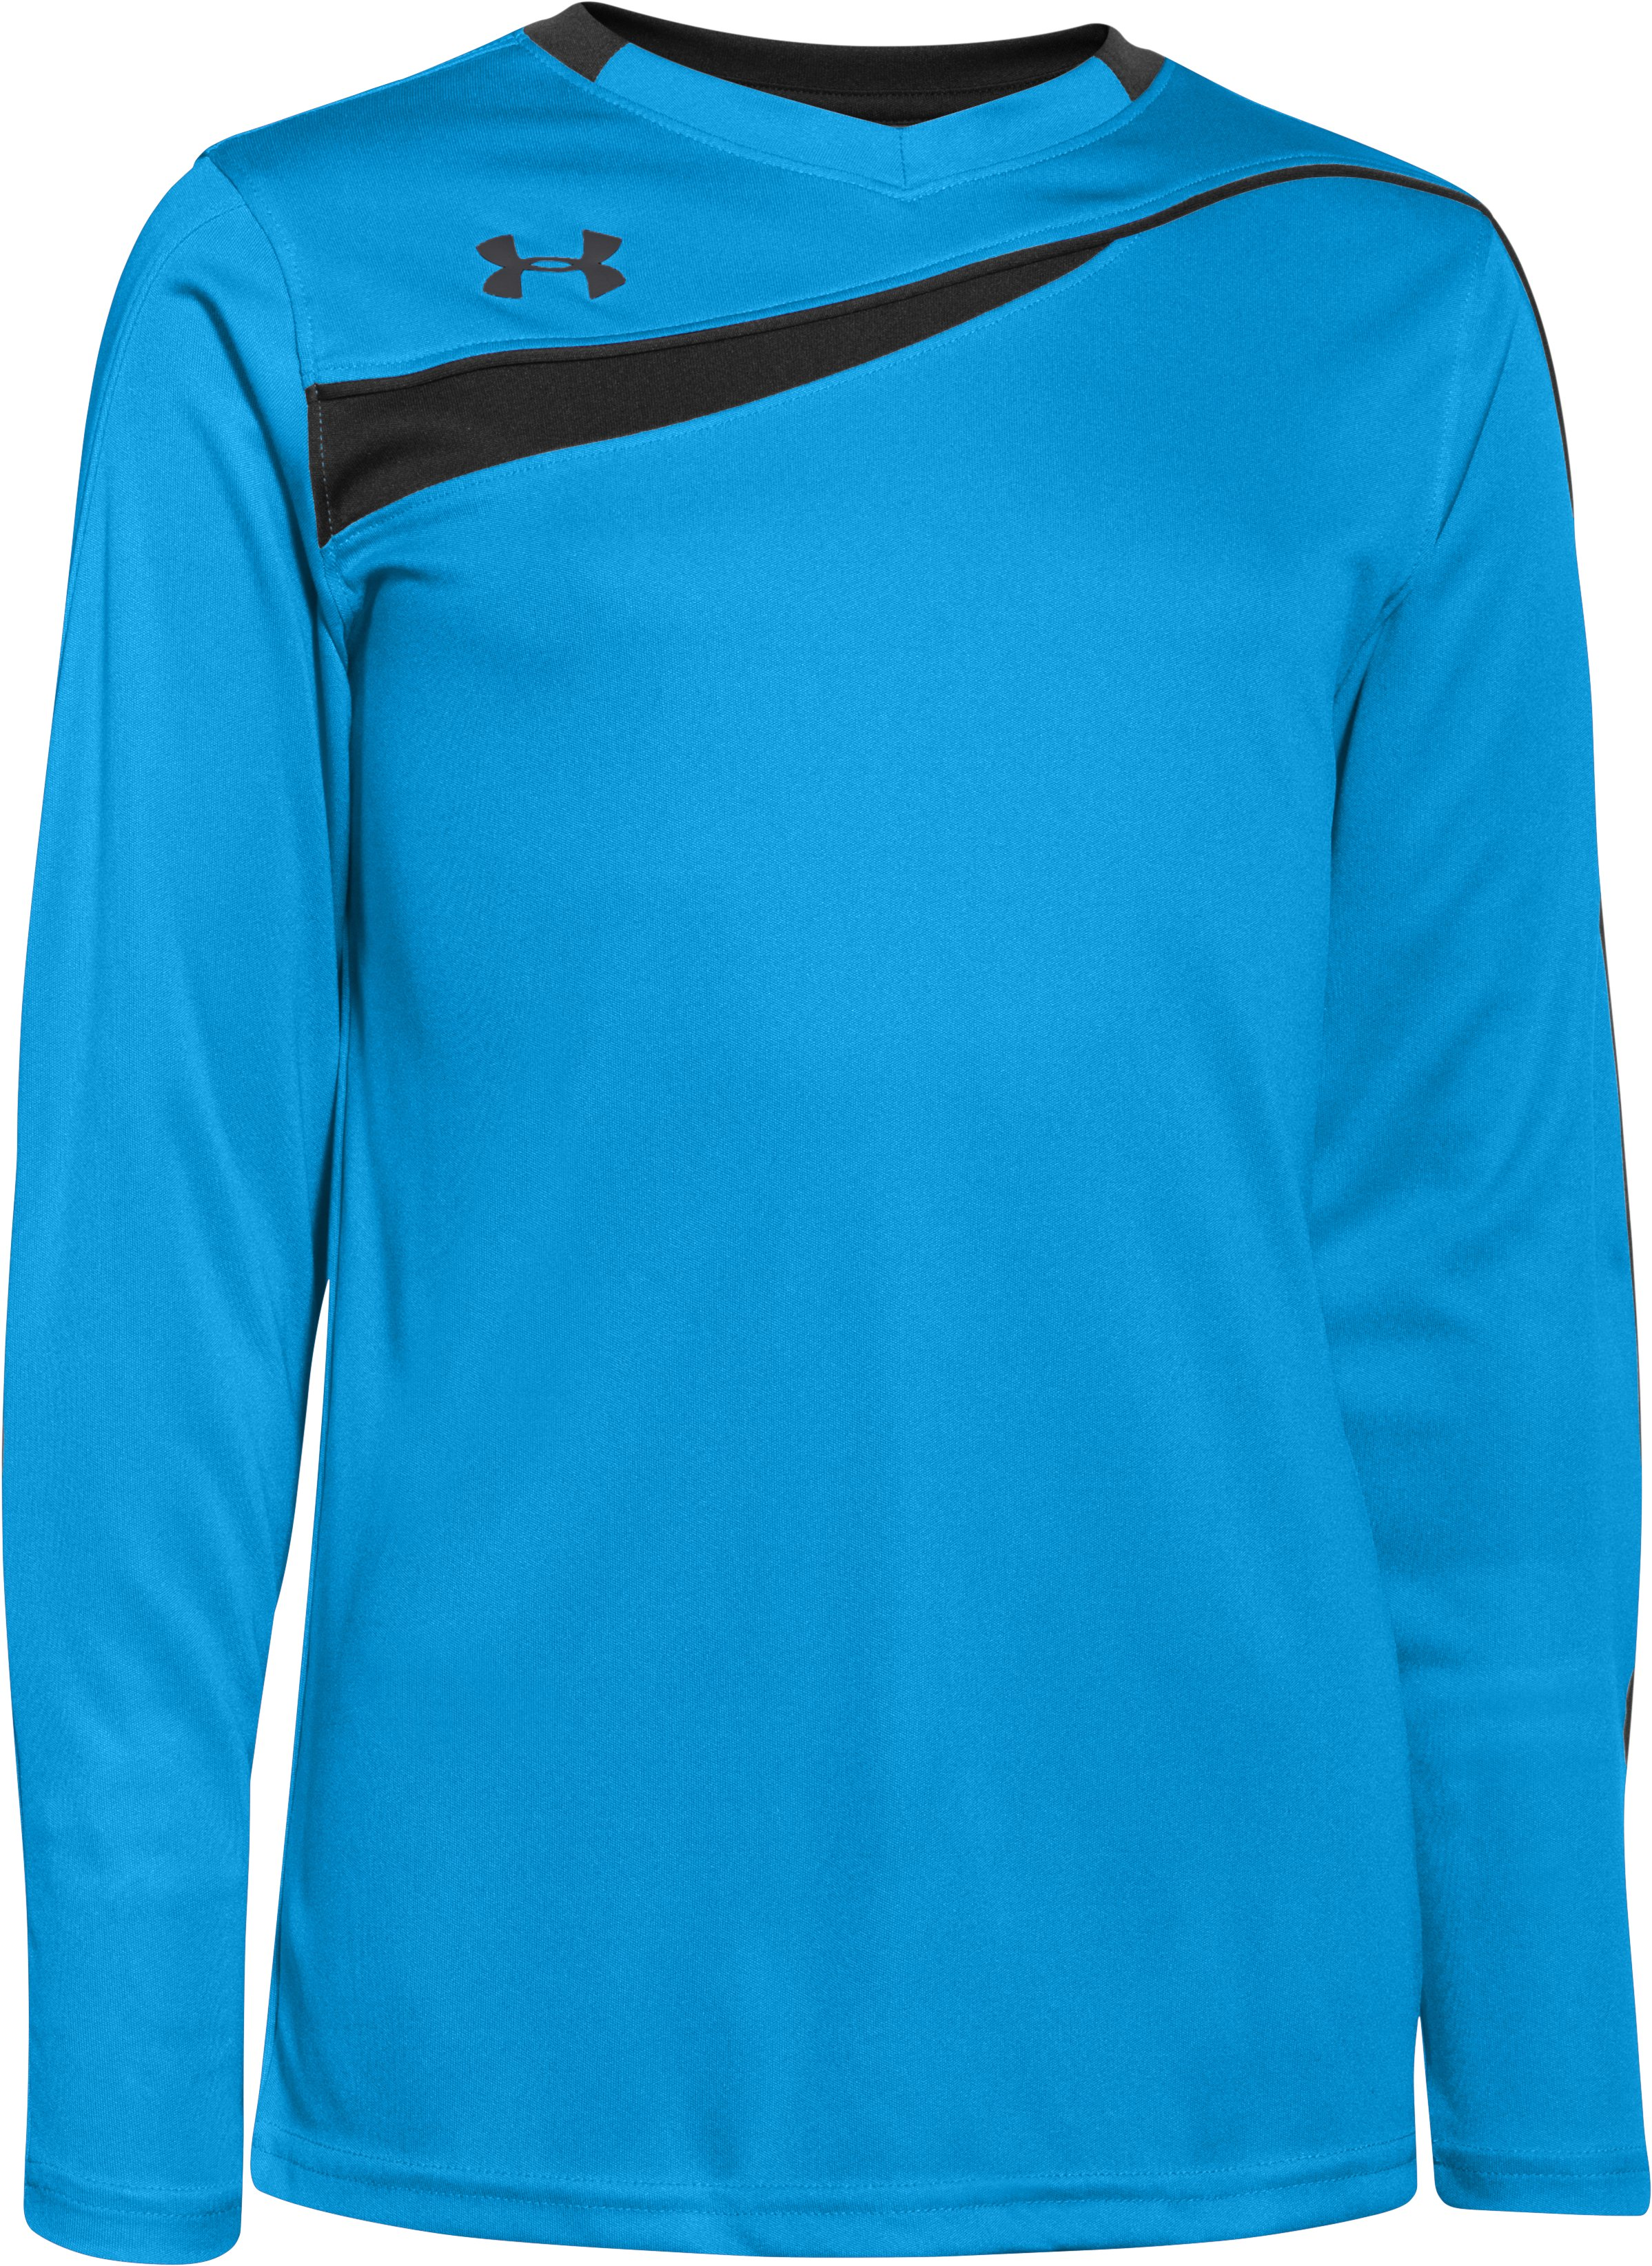 Boys' UA Horizontal Goalkeeper Jersey, Capri,